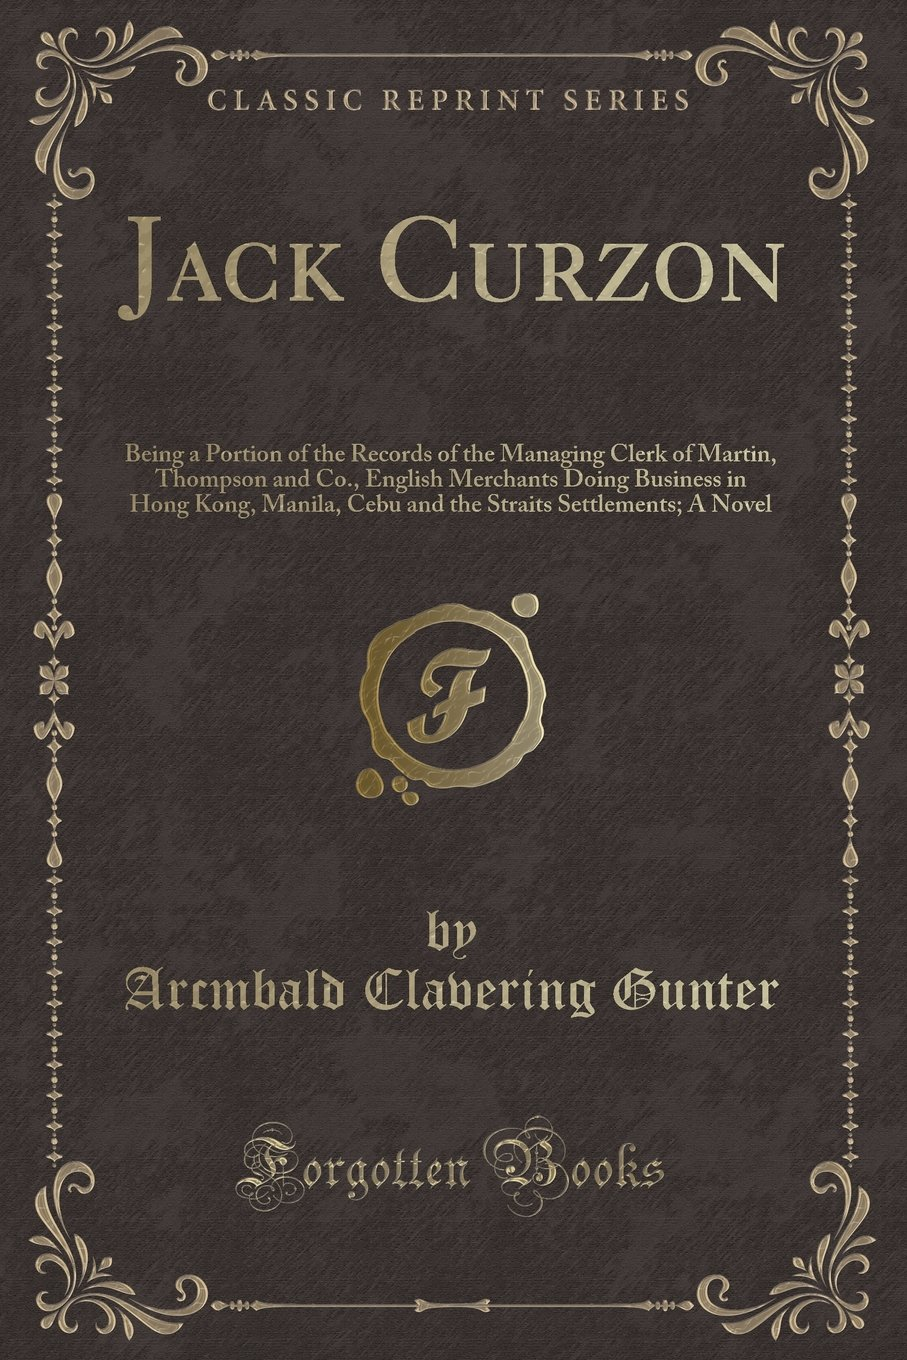 Jack Curzon: Being a Portion of the Records of the Managing Clerk of Martin, Thompson and Co., English Merchants Doing Business in Hong Kong, Manila, ... Settlements; A Novel (Classic Reprint) pdf